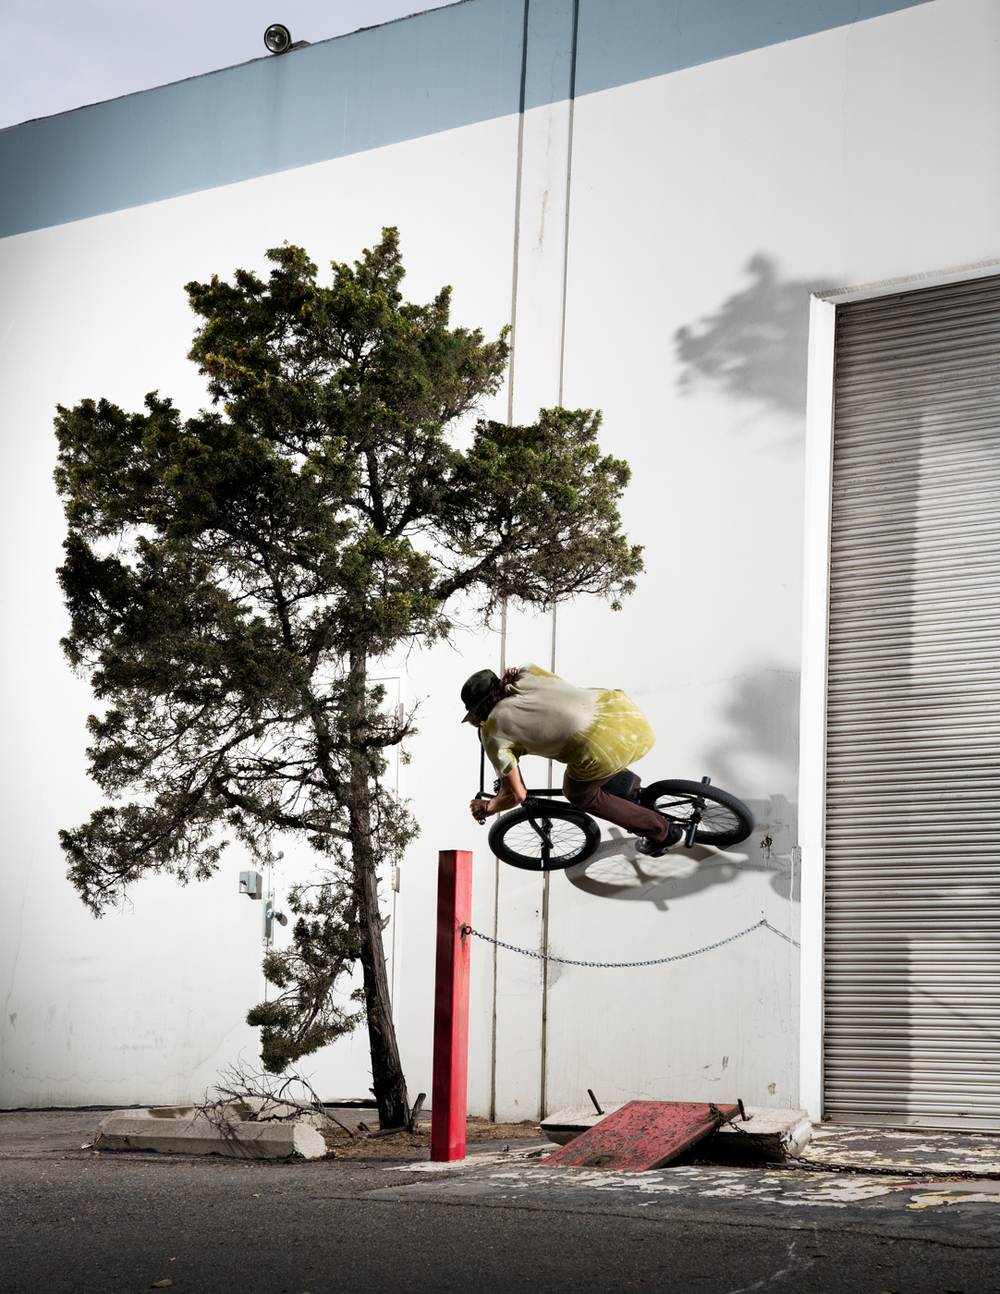 Mike Mastroni Wallride BMX